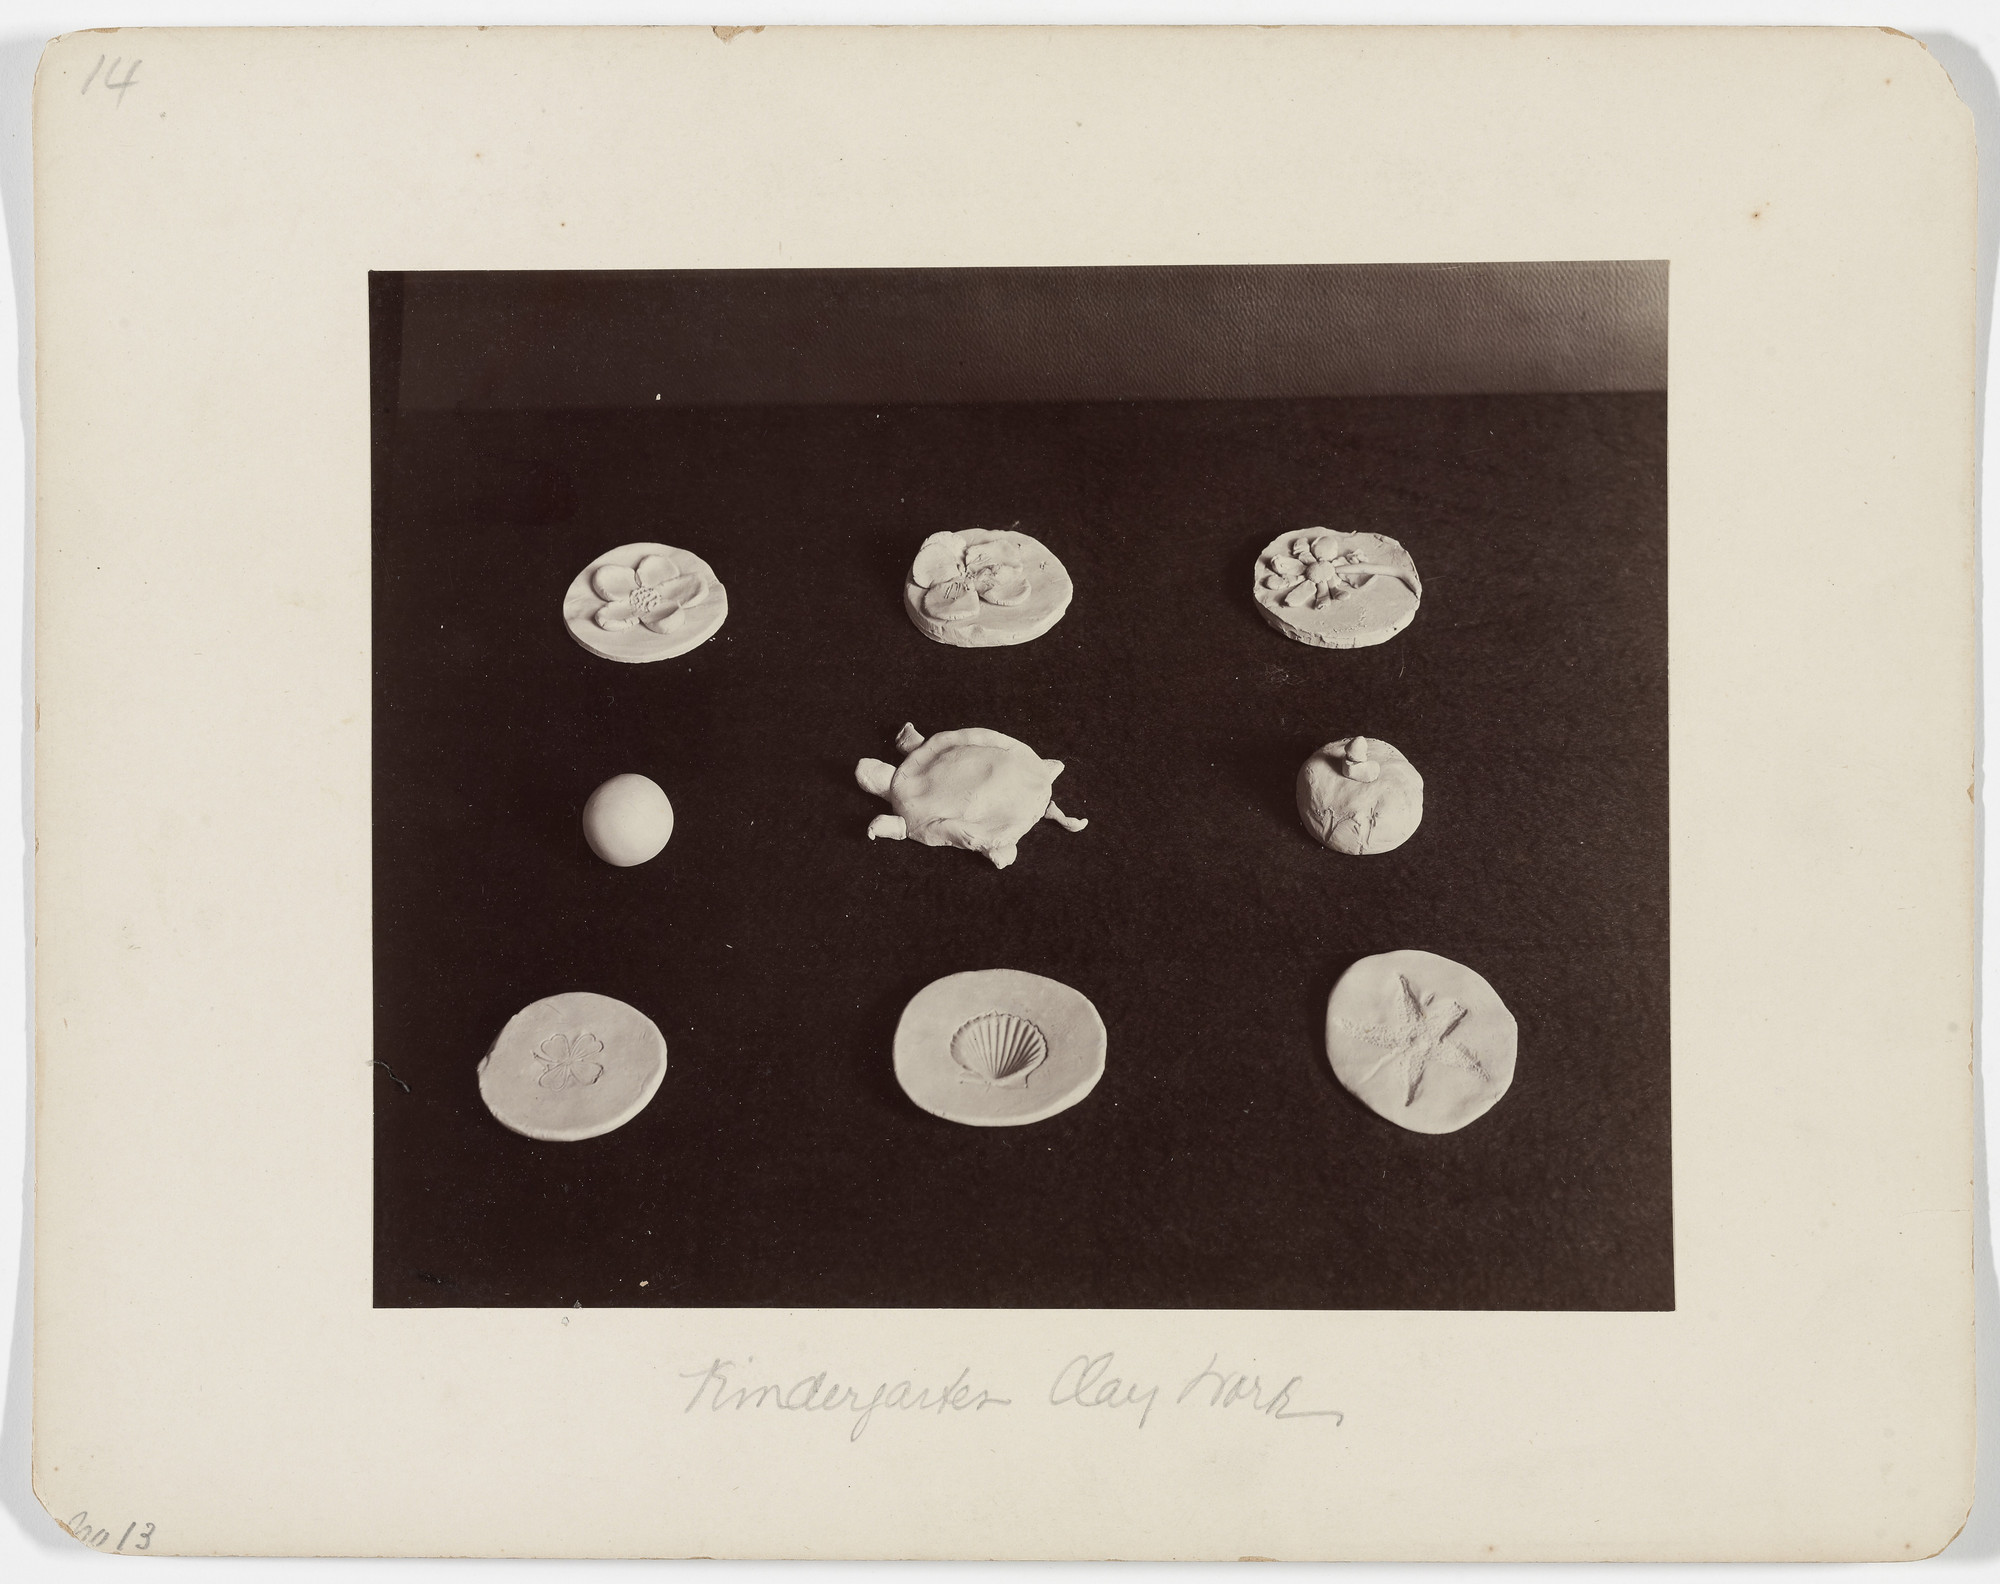 Unknown Artist. Gift 20-Clay (Kindergarten material based on the educational theories of Friedrich Froebel). 1899